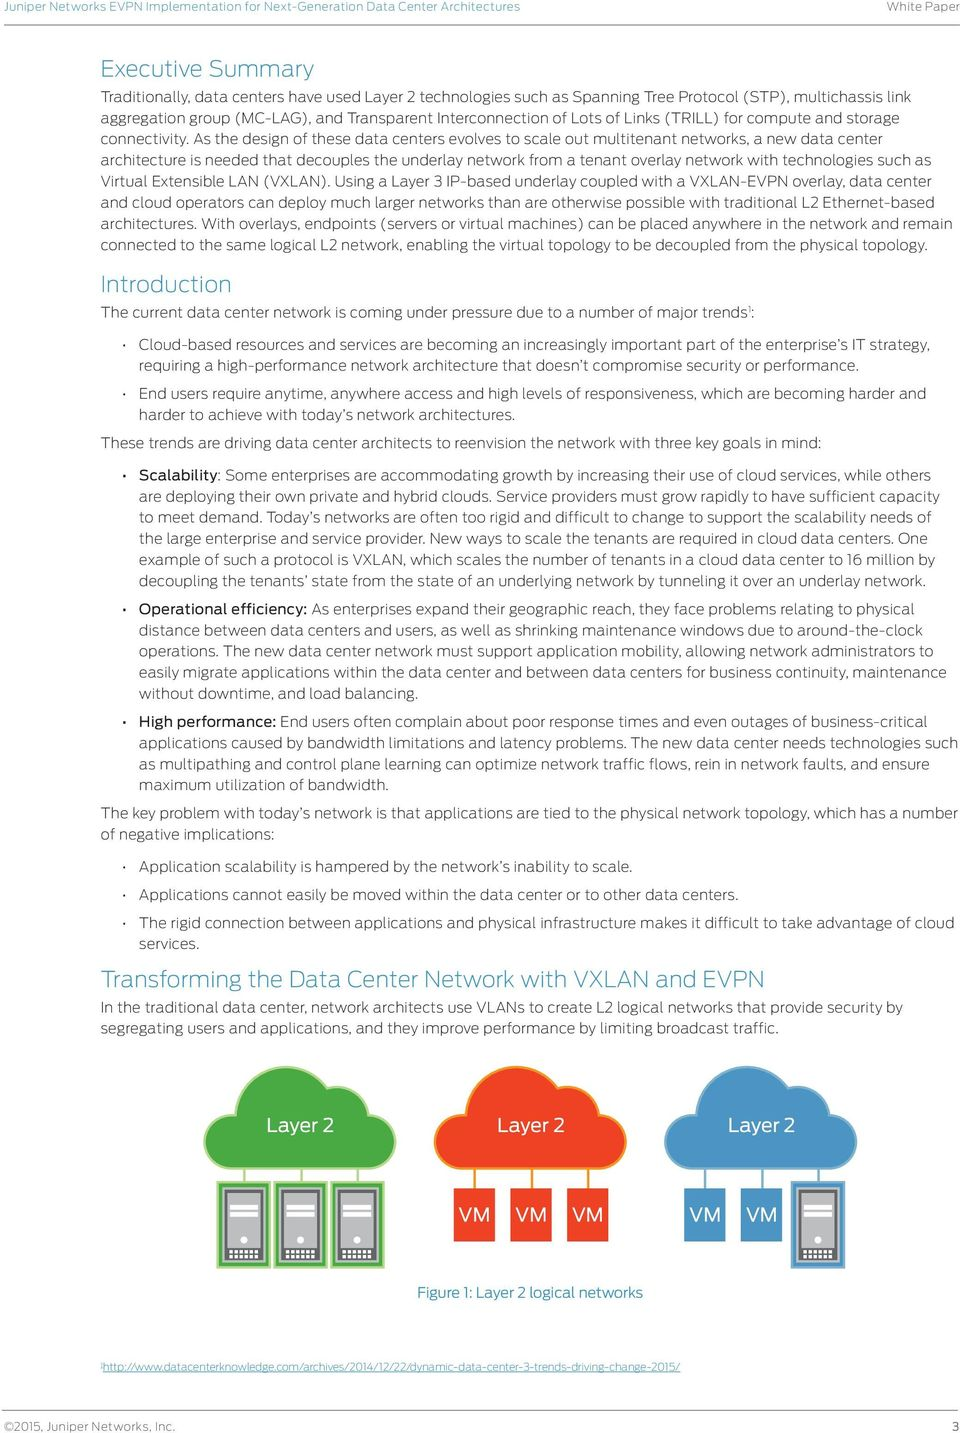 Juniper Networks EVPN Implementation for Next-Generation